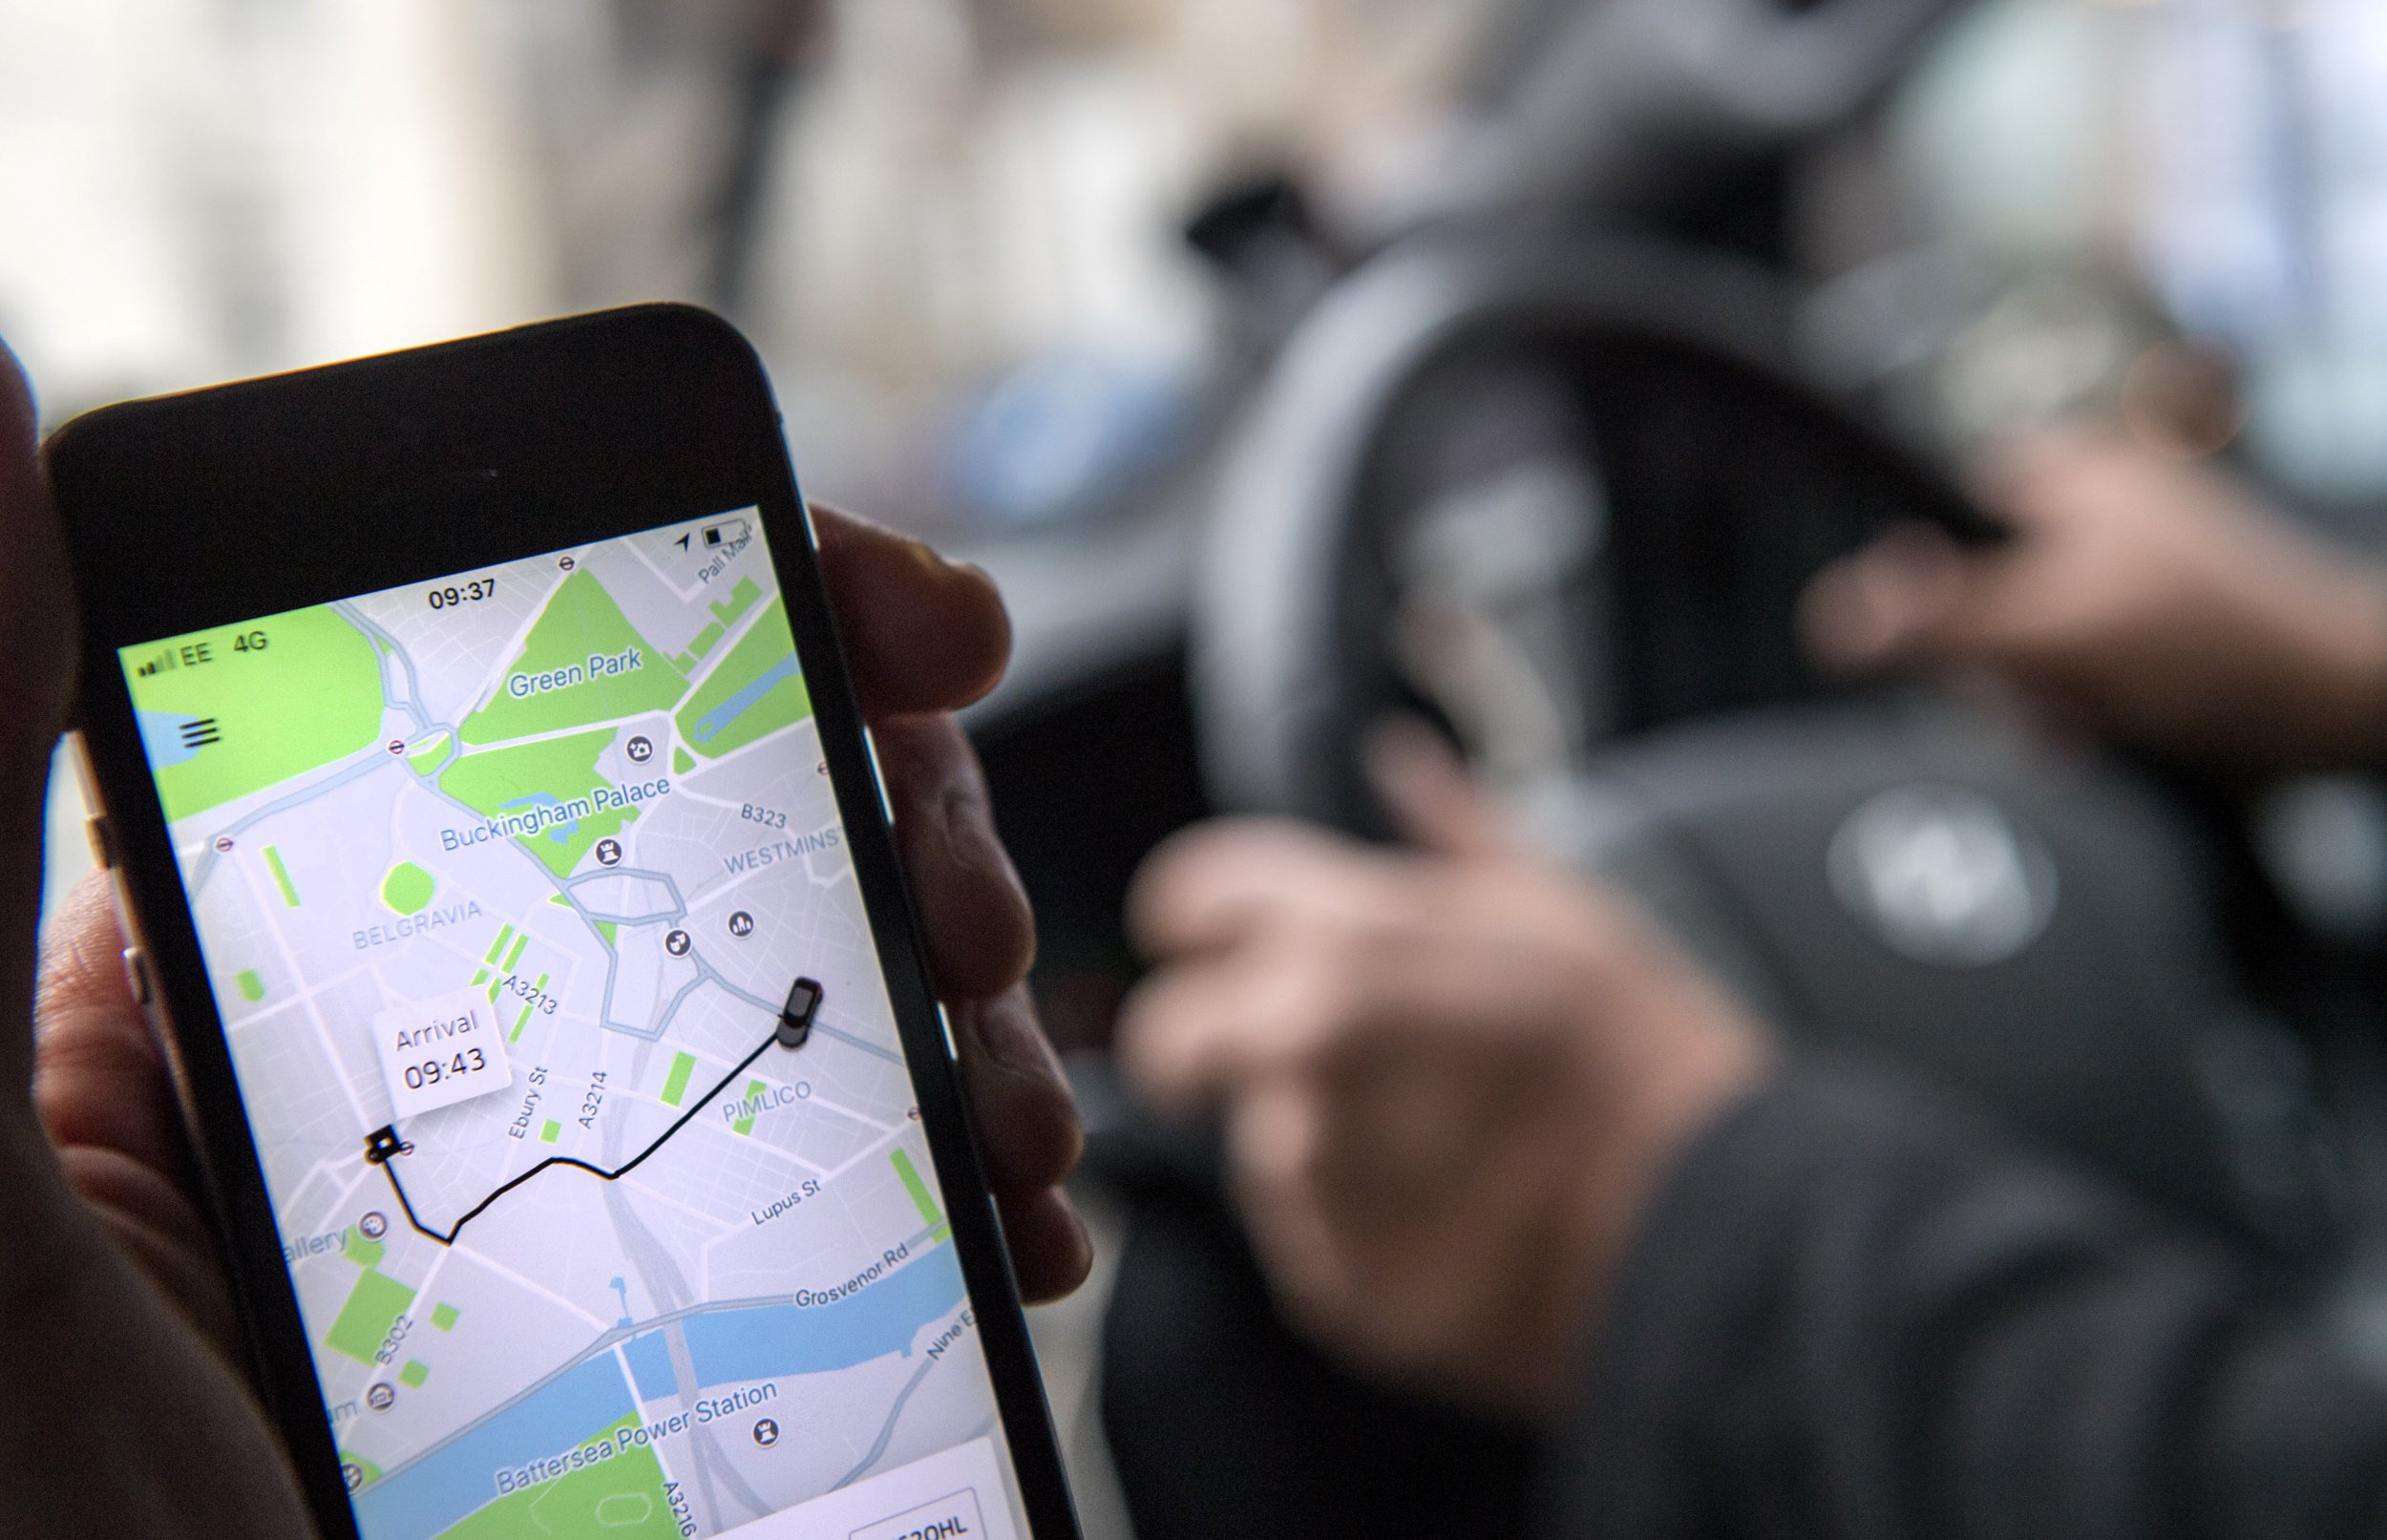 The Uber Technologies Inc. ride-hailing service smartphone app sits on a smartphone display during a journey in this arranged photograph in London, U.K., on Friday, Dec. 22, 2017. Uber will be regulated in European Union countries as a transport company after the bloc's top court rejected its claim to be a digital service provider, a decision that could increase legal risks for other gig-economy companies including Airbnb. Photographer: Chris J. Ratcliffe/Bloomberg via Getty Images